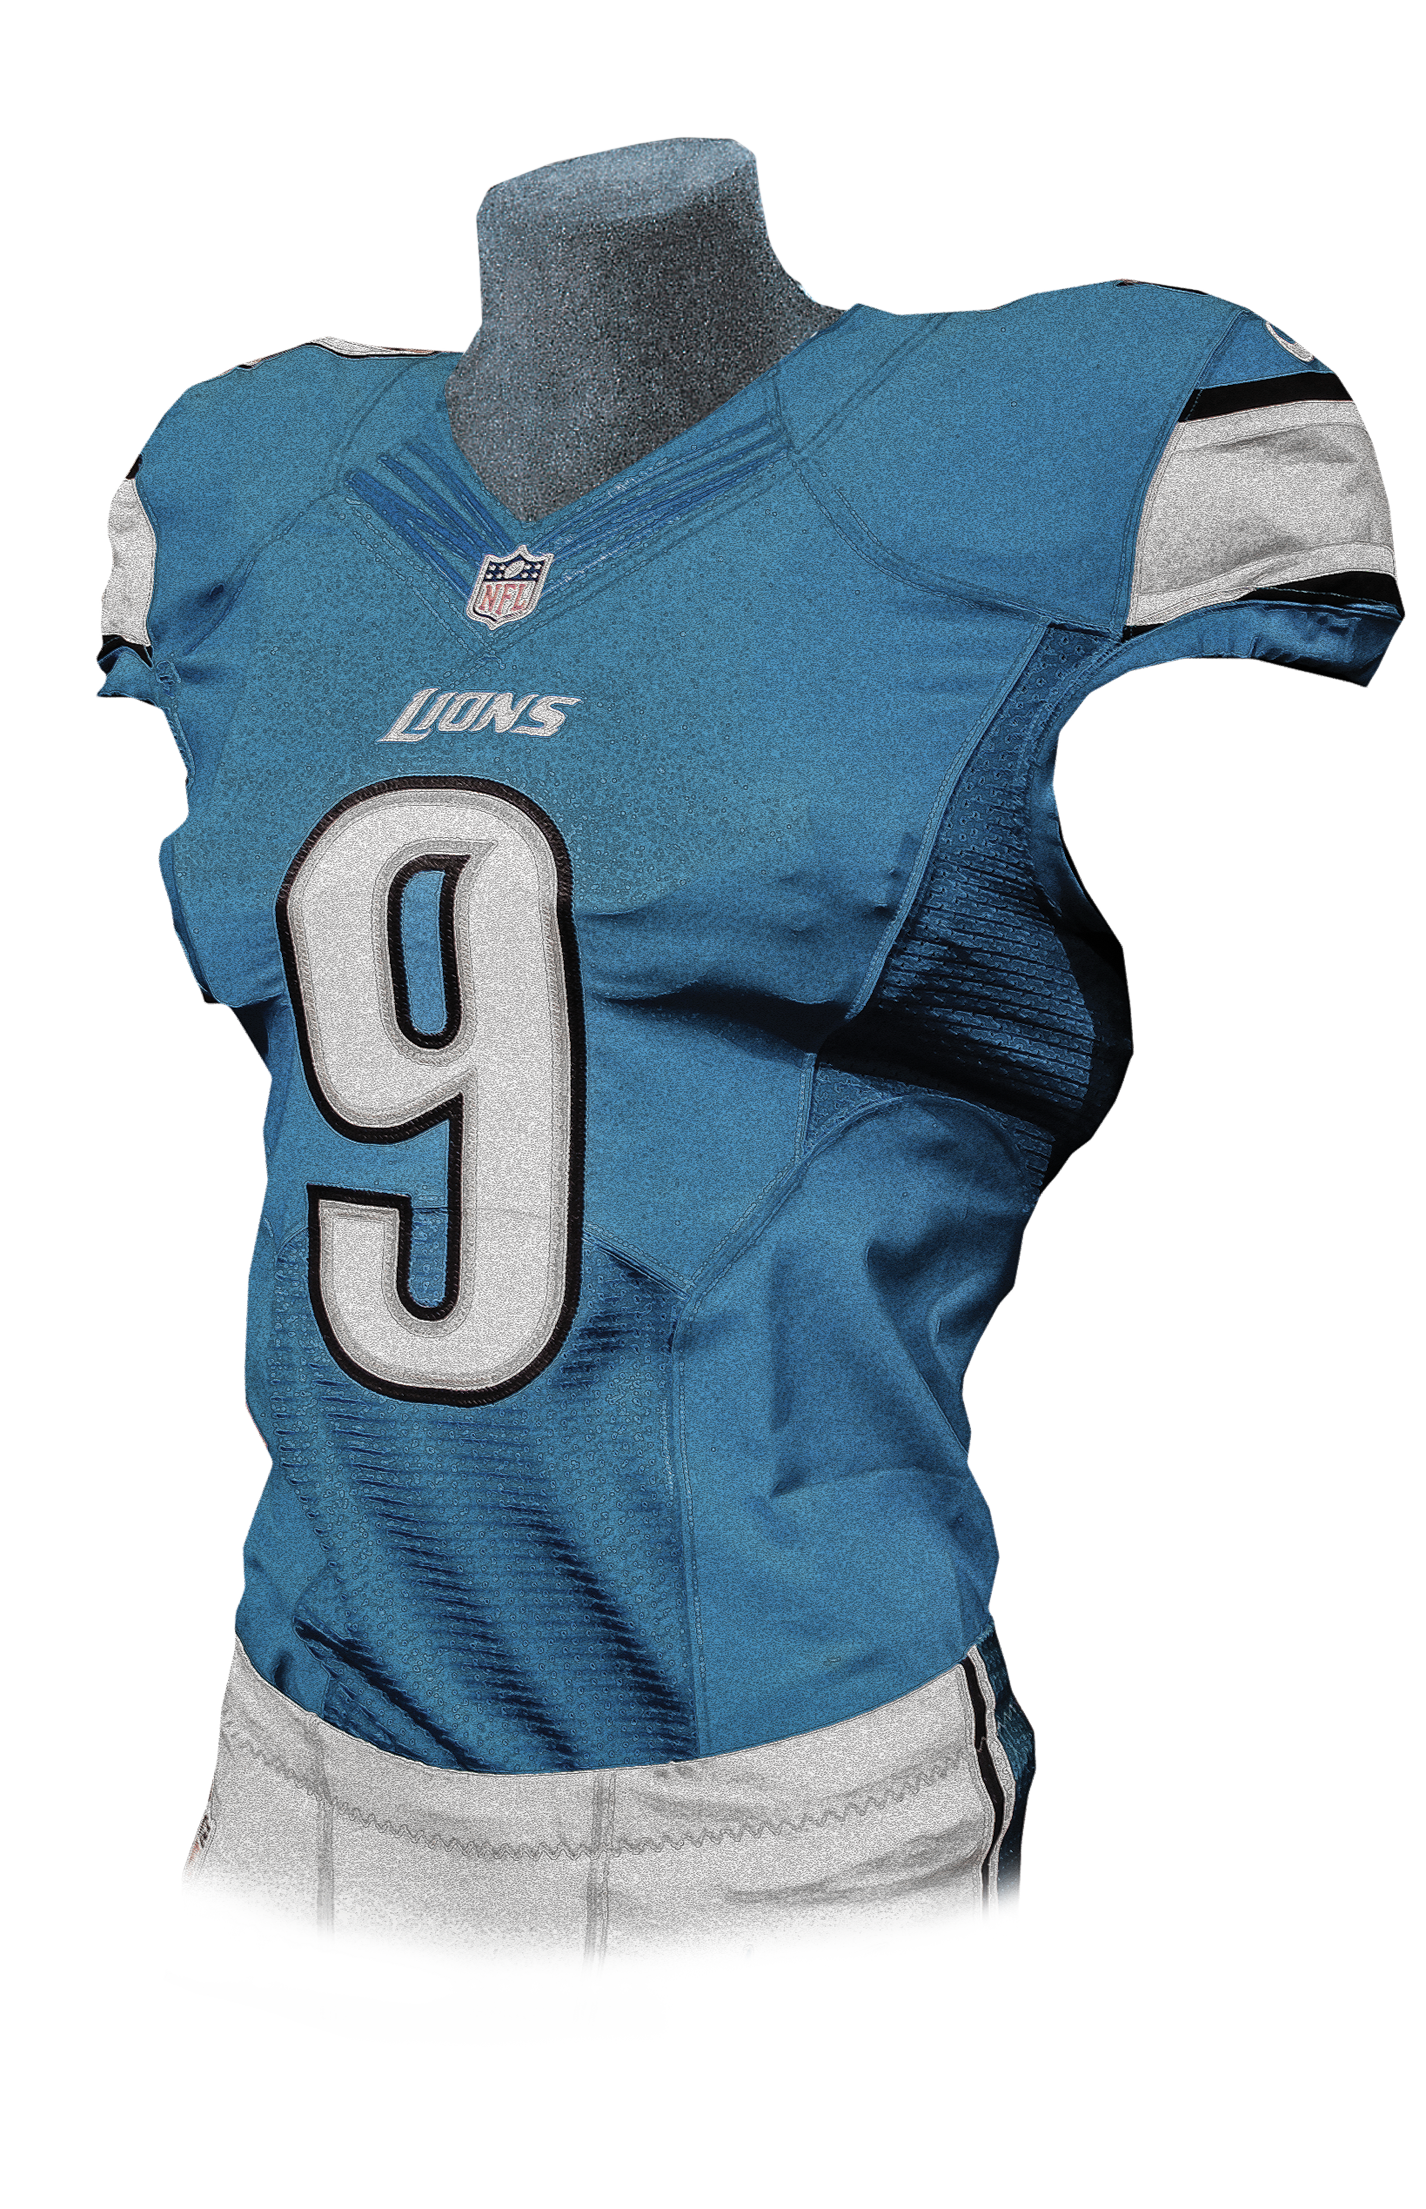 277d562ca 2005  The Lions introduced a new black alternate jersey featuring Honolulu  blue numbers with silver and white trim. The alternate jersey can be worn  in as ...